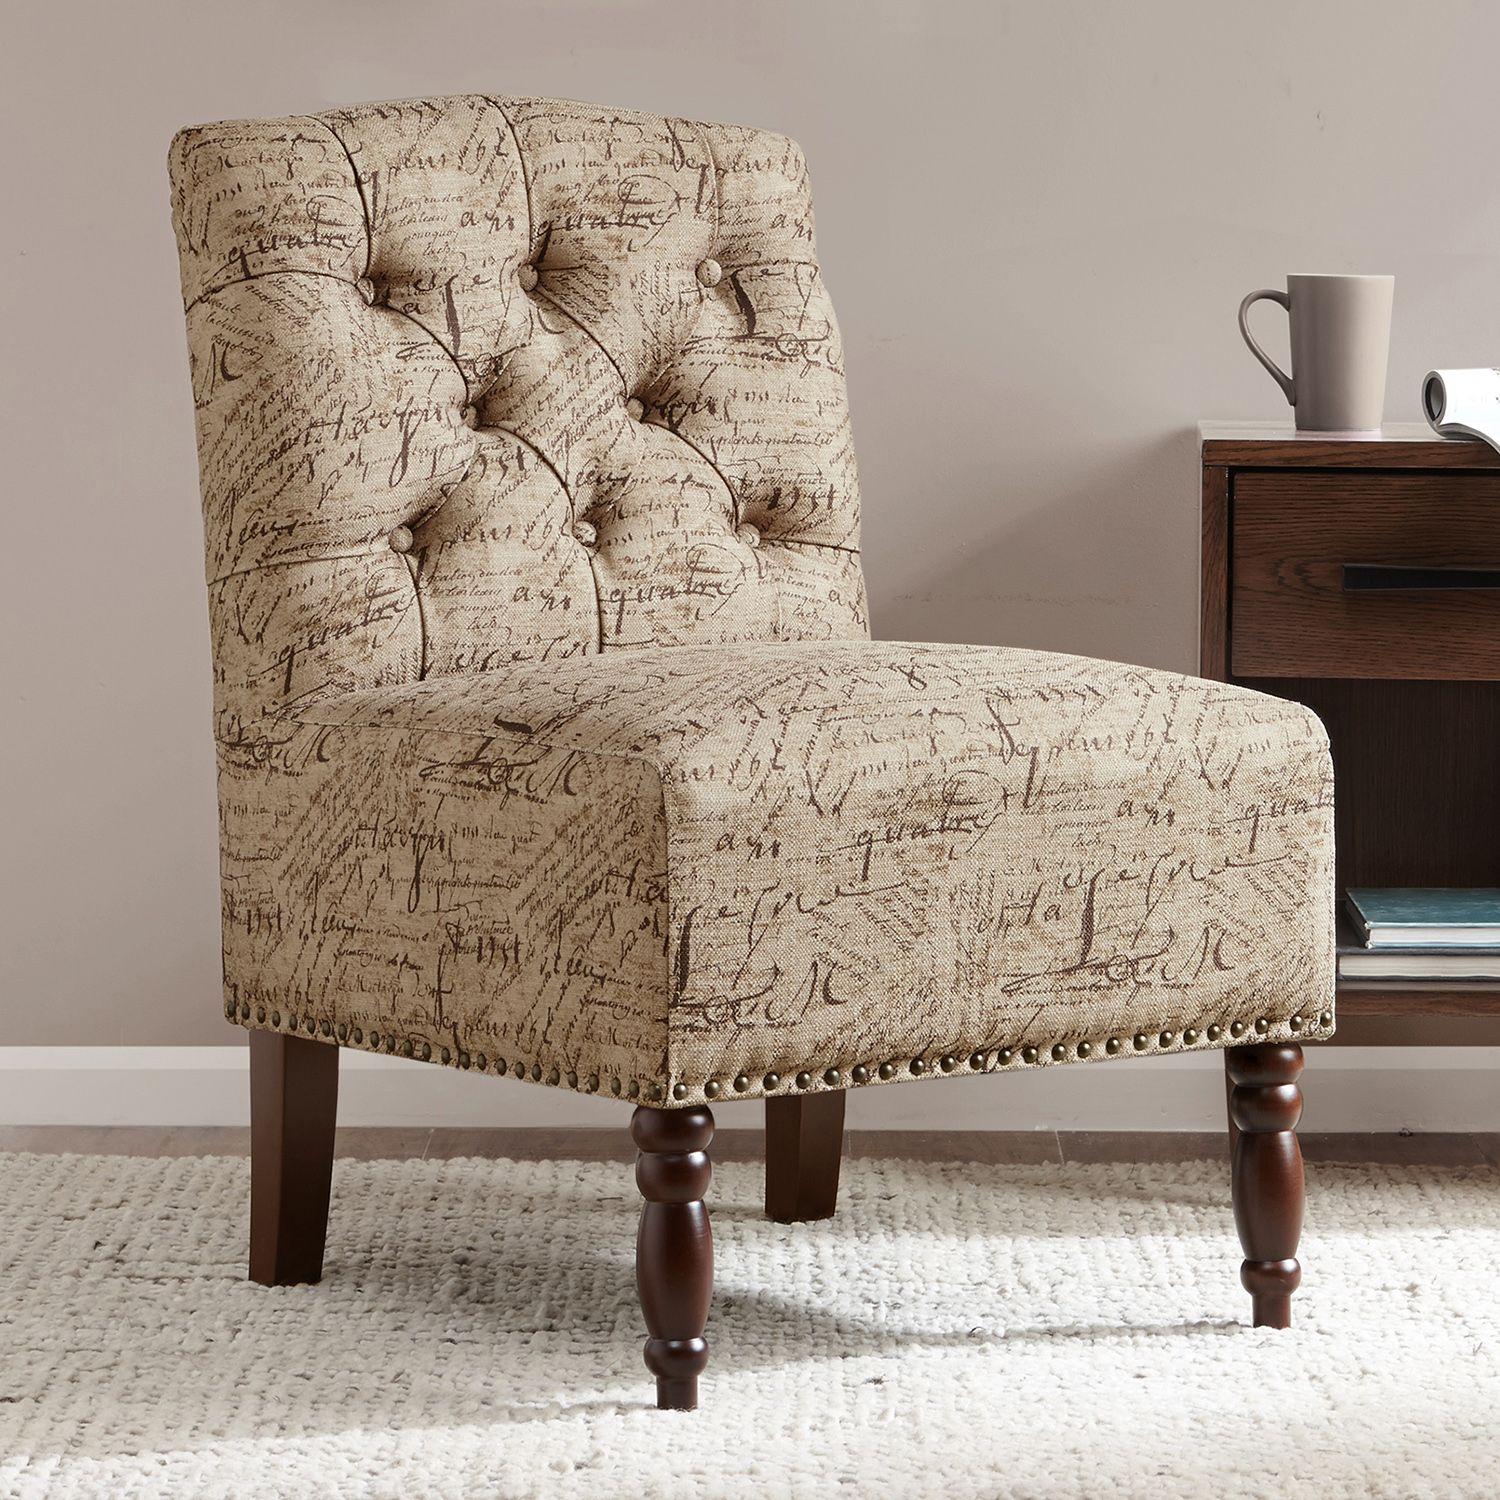 Printed Accent Chairs Affordable This Set Up By Robin Bruce